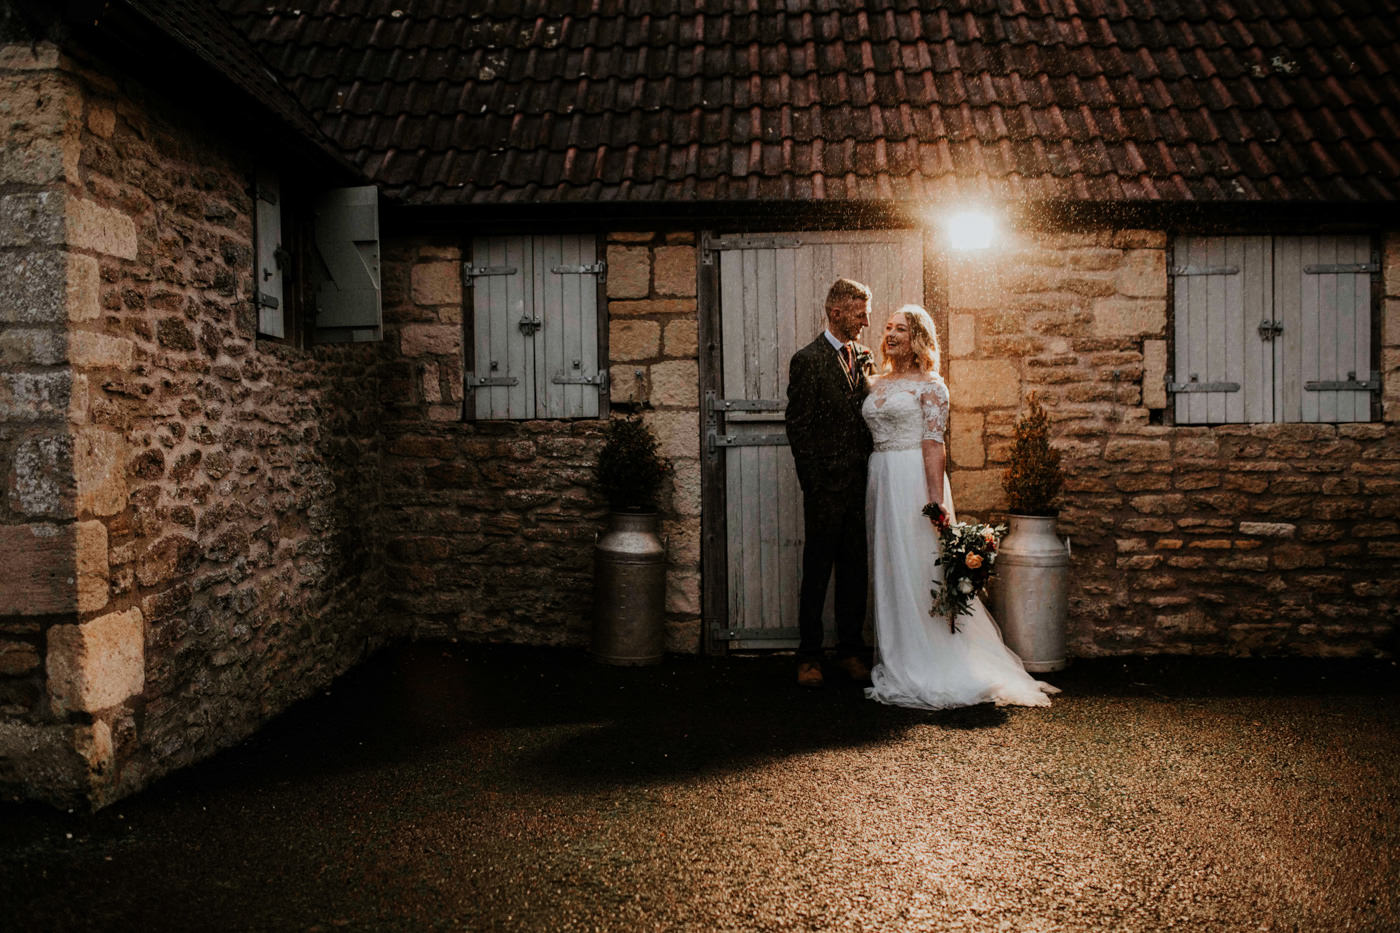 Sarah and Matt, Wick Farm, Bath 81